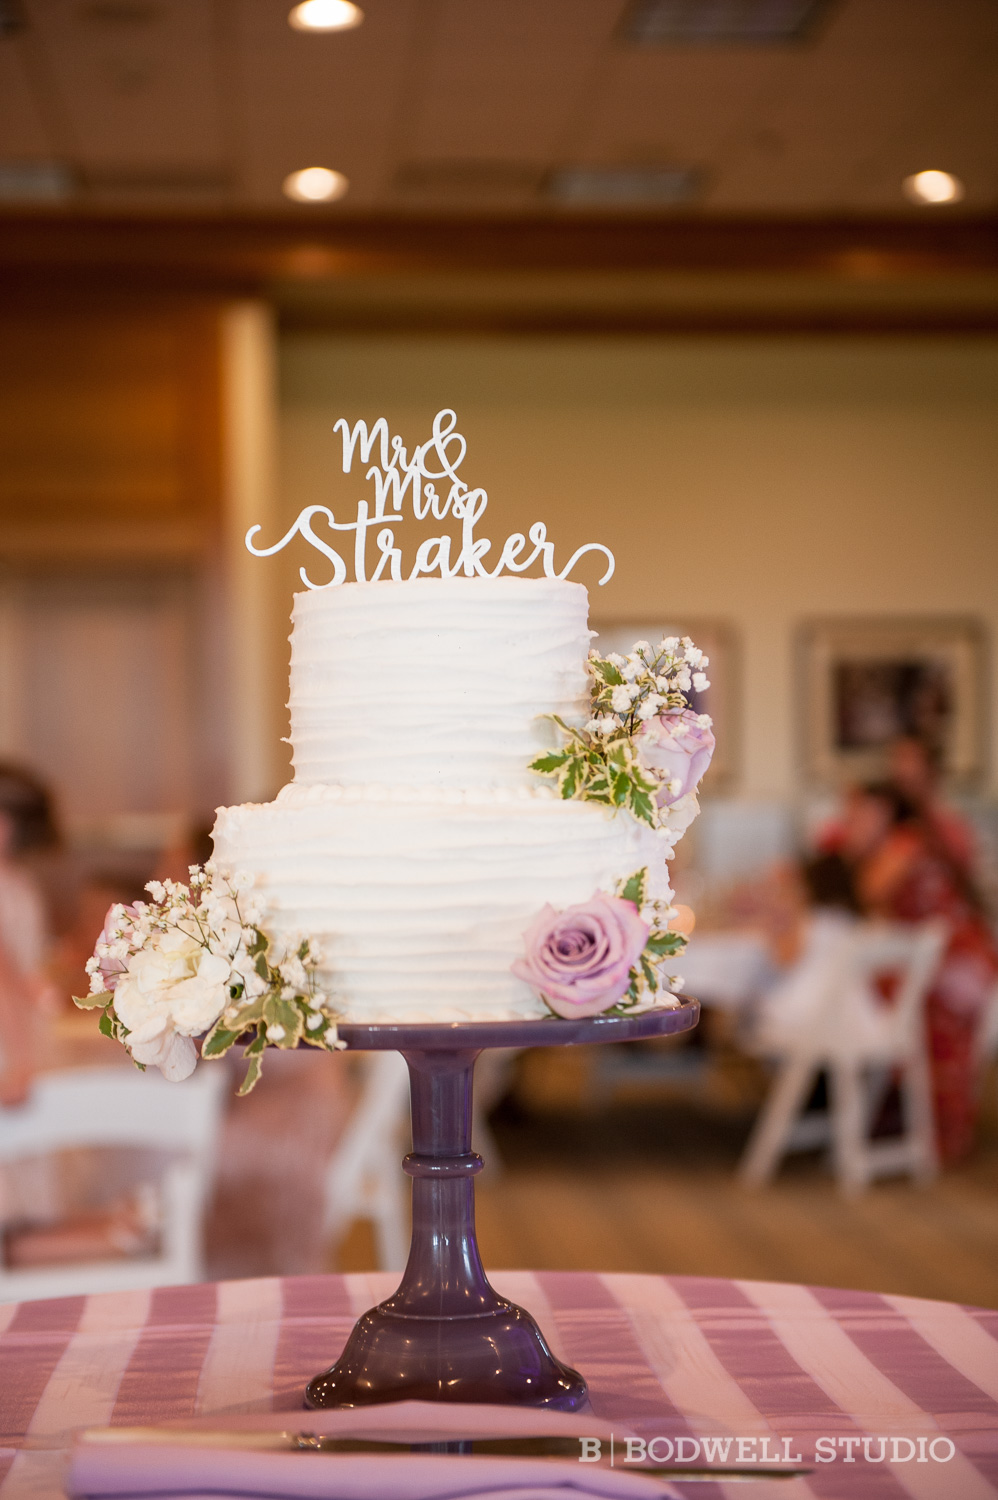 Straker_Wedding_Blog_037.jpg